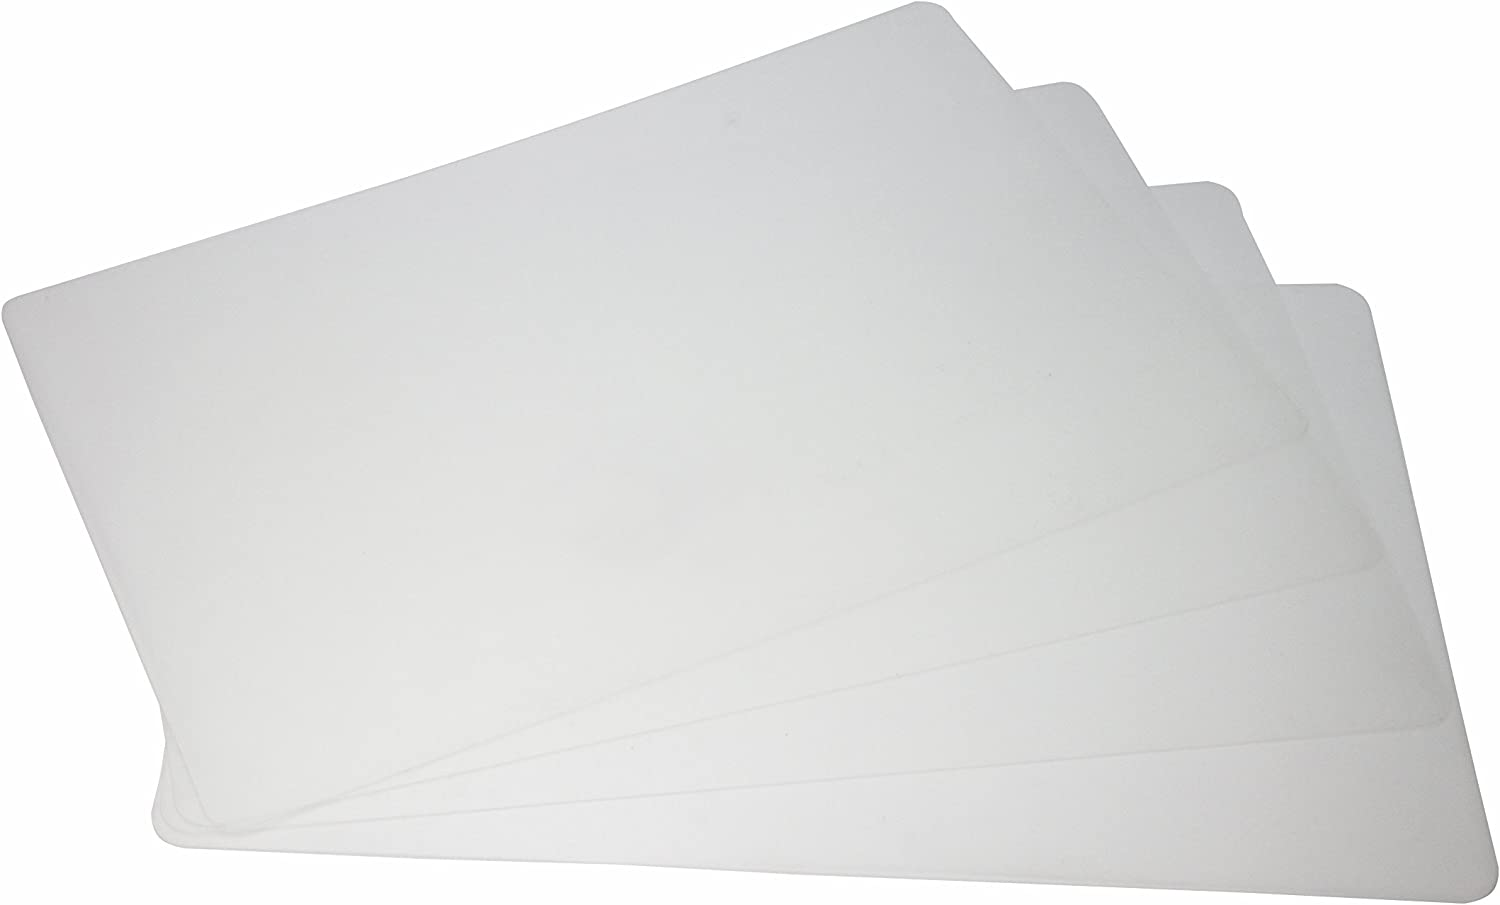 Generic Frosted Clear Plactic Placemat for Table,Dining,Kitchen Pack of 10